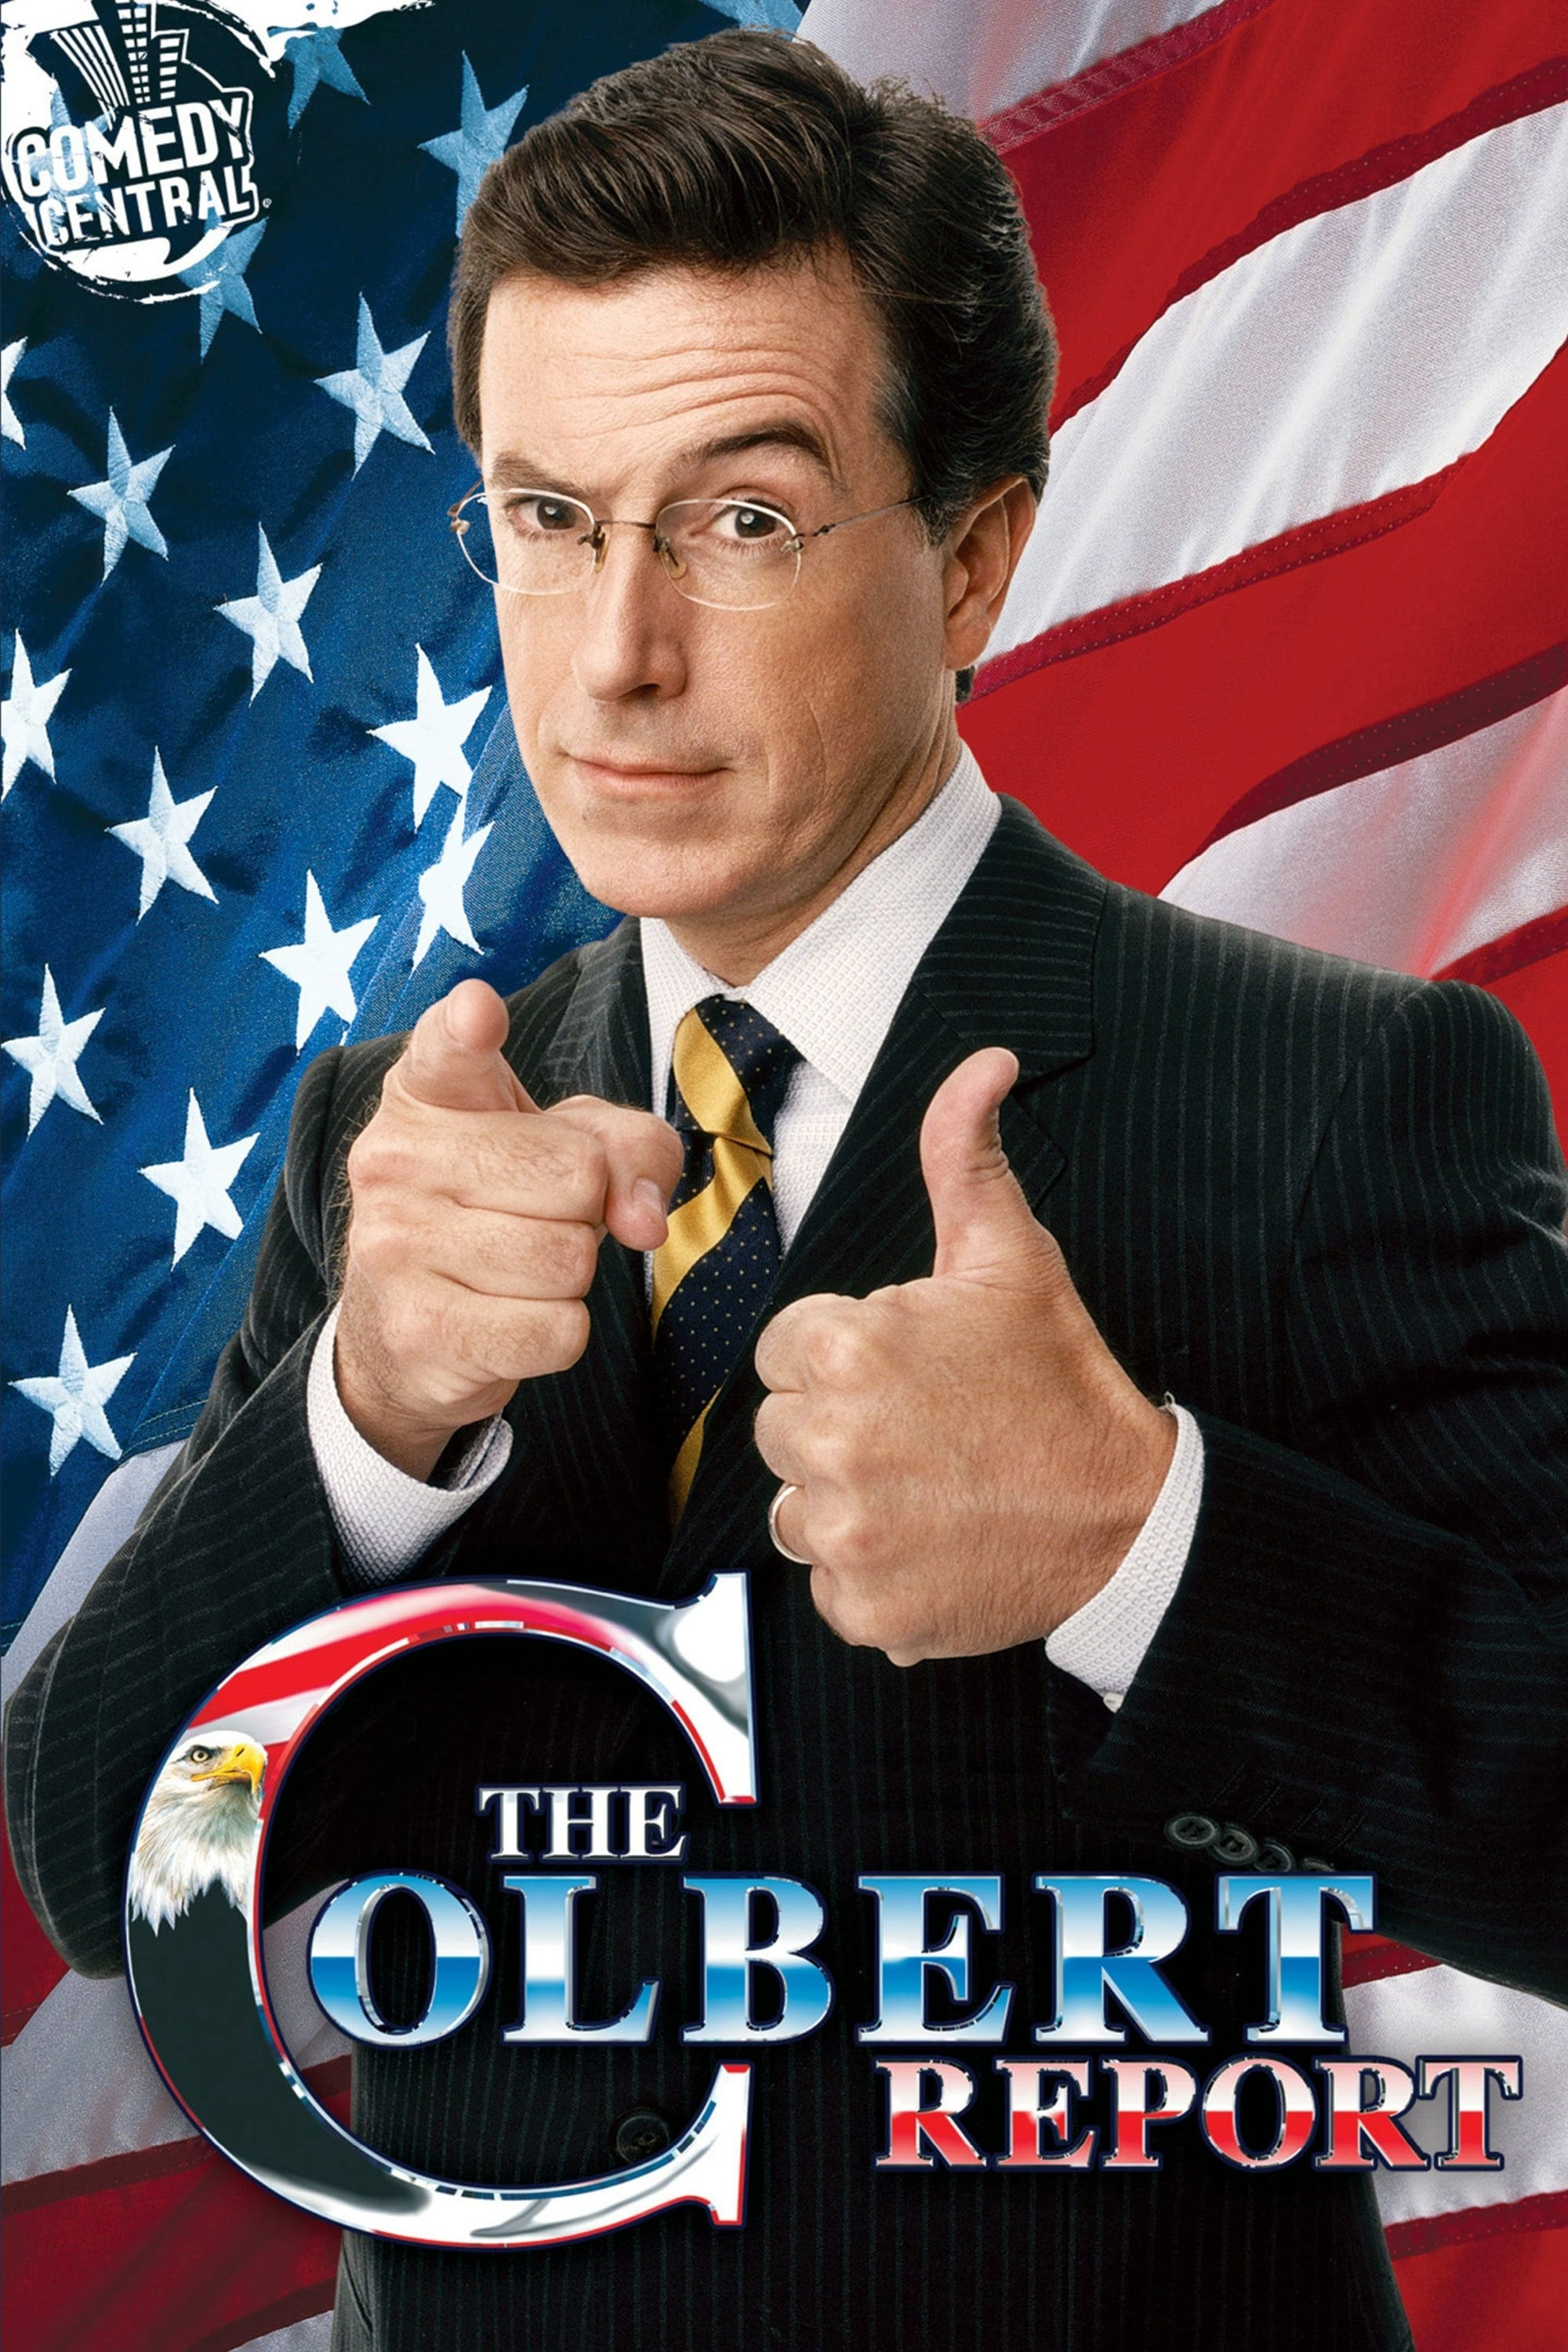 Image The Colbert Report